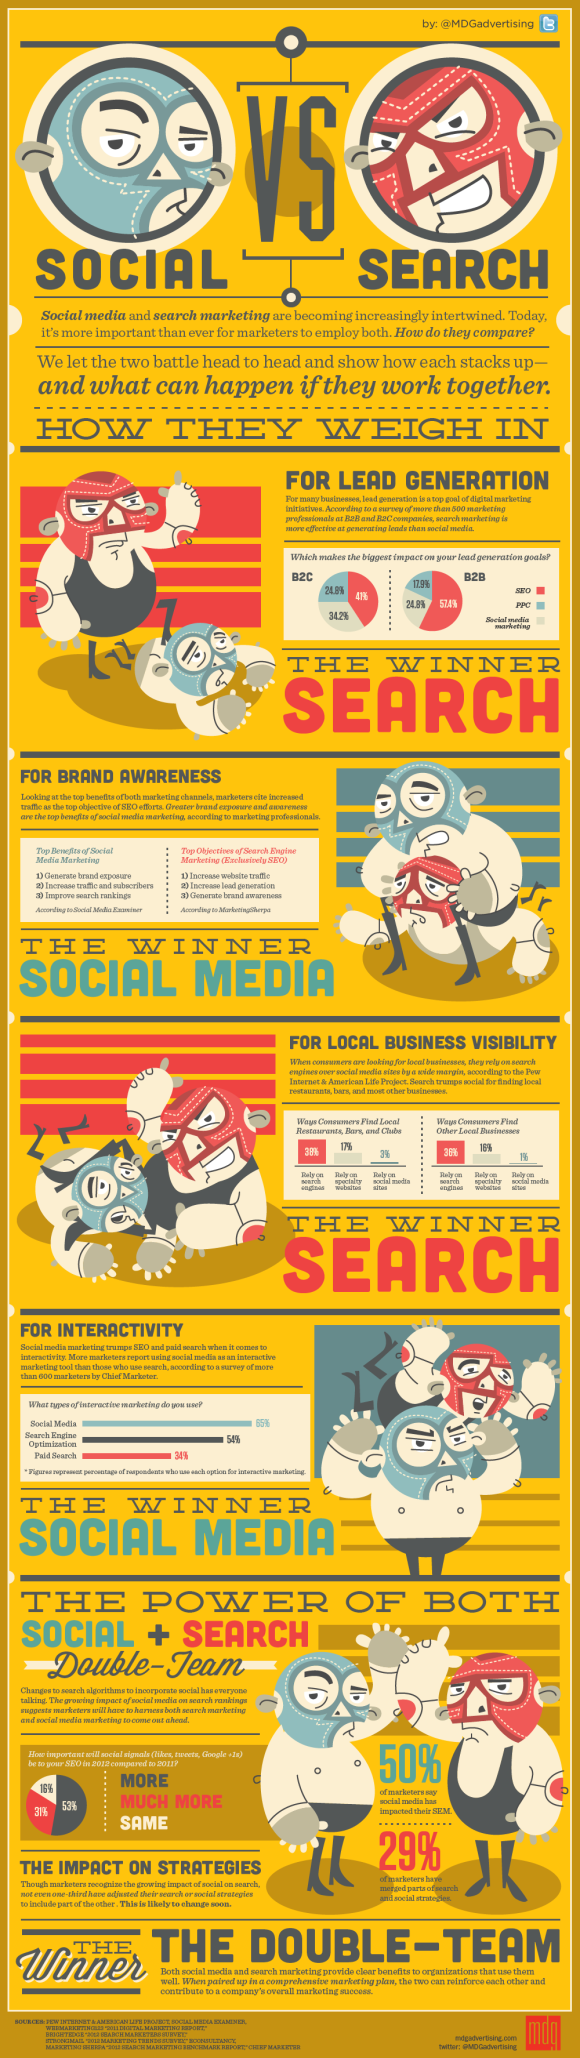 Social Media vs Seach Marketing - How Do They Match Up?